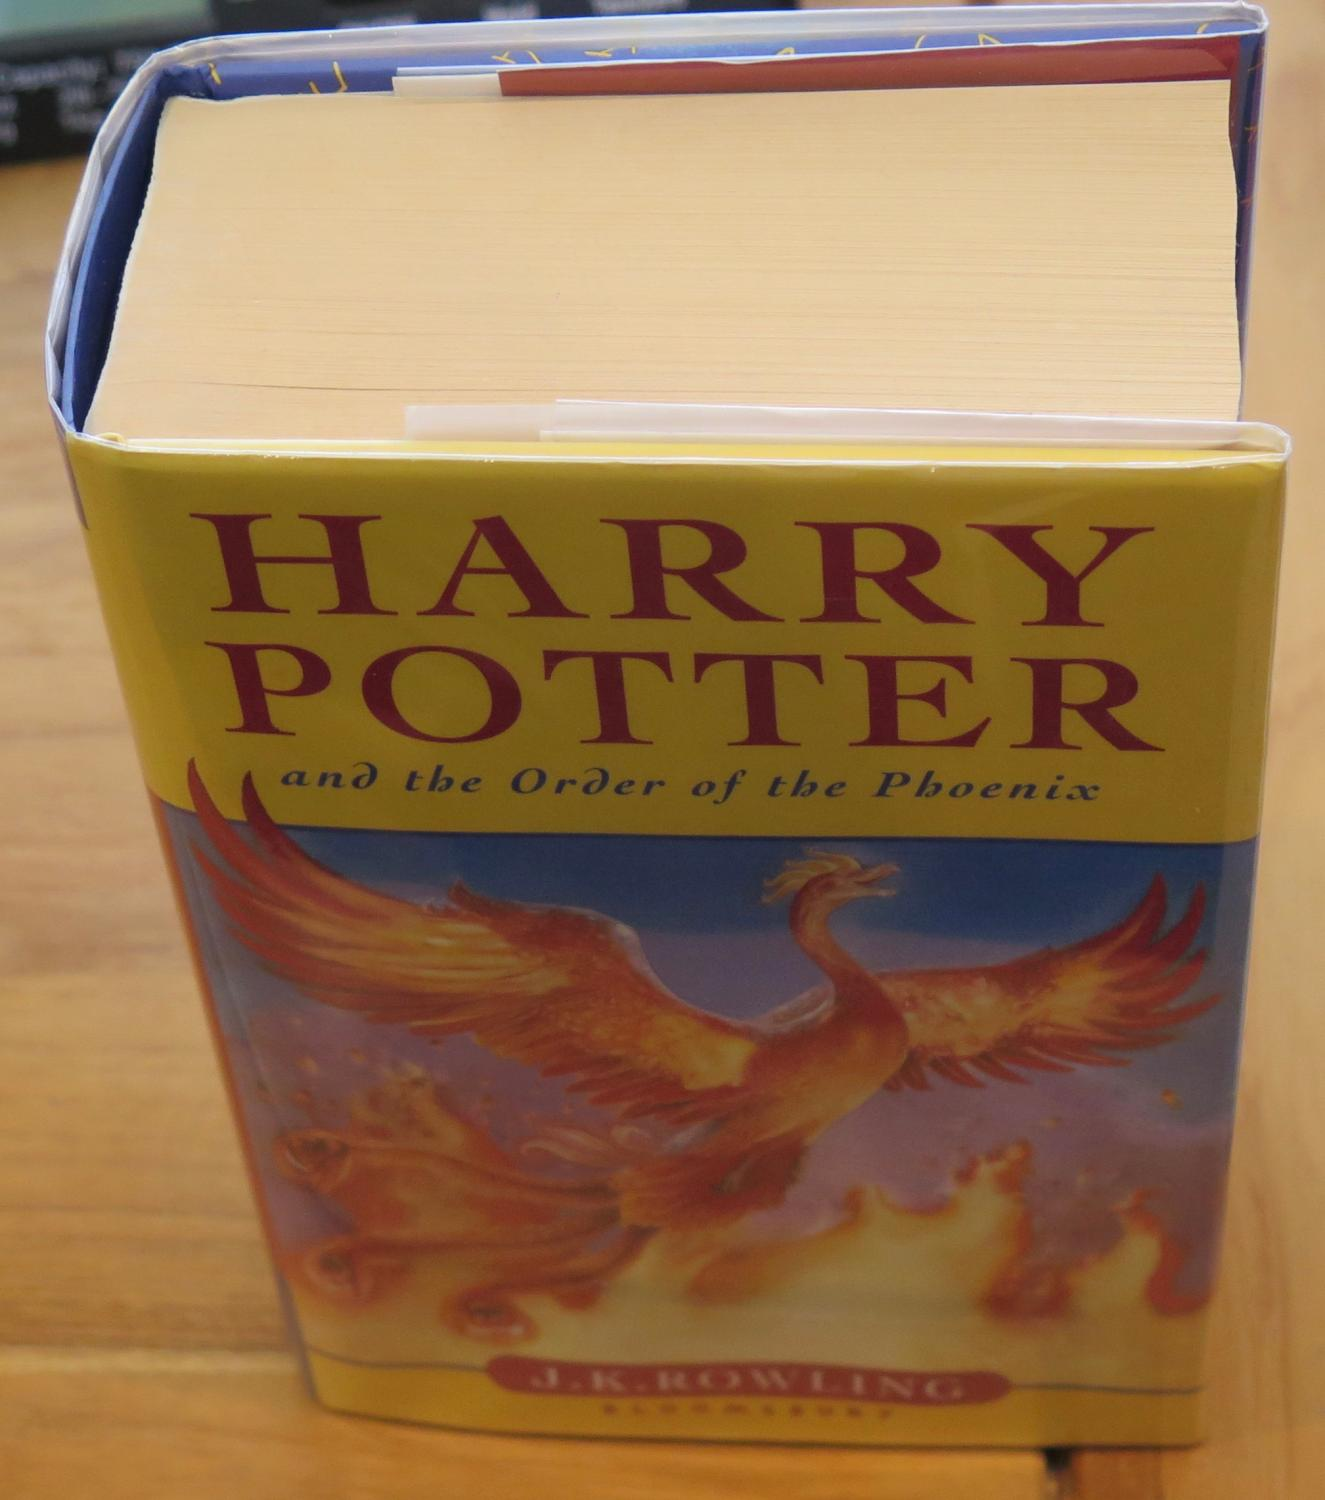 harry potter and the order of the phoenix pdf bloomsbury